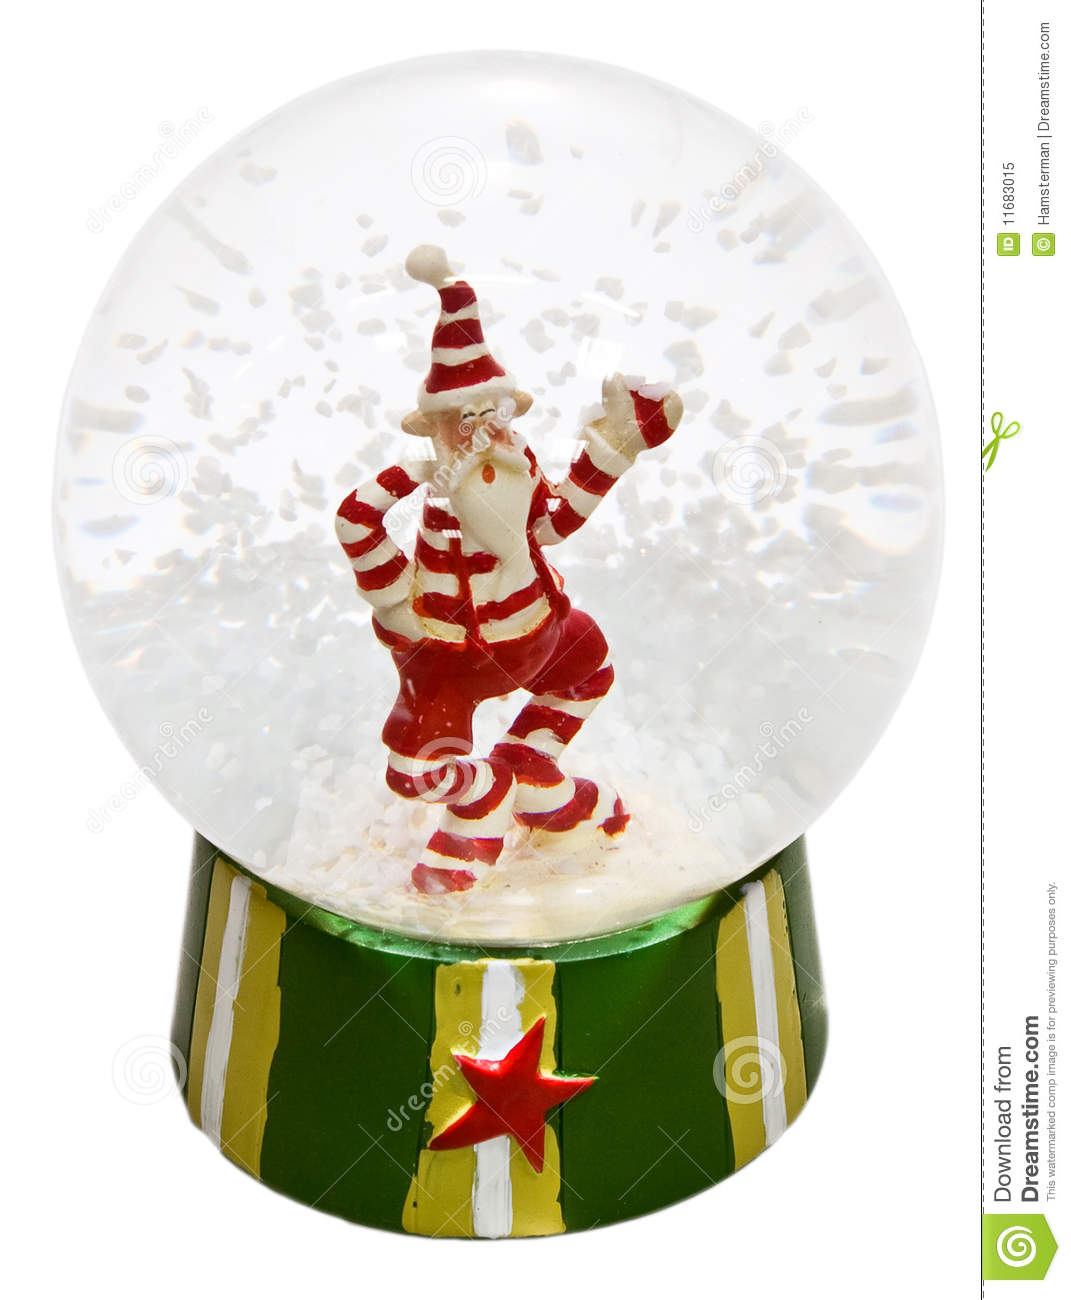 Transparent glass ball with Santa Claus and snow